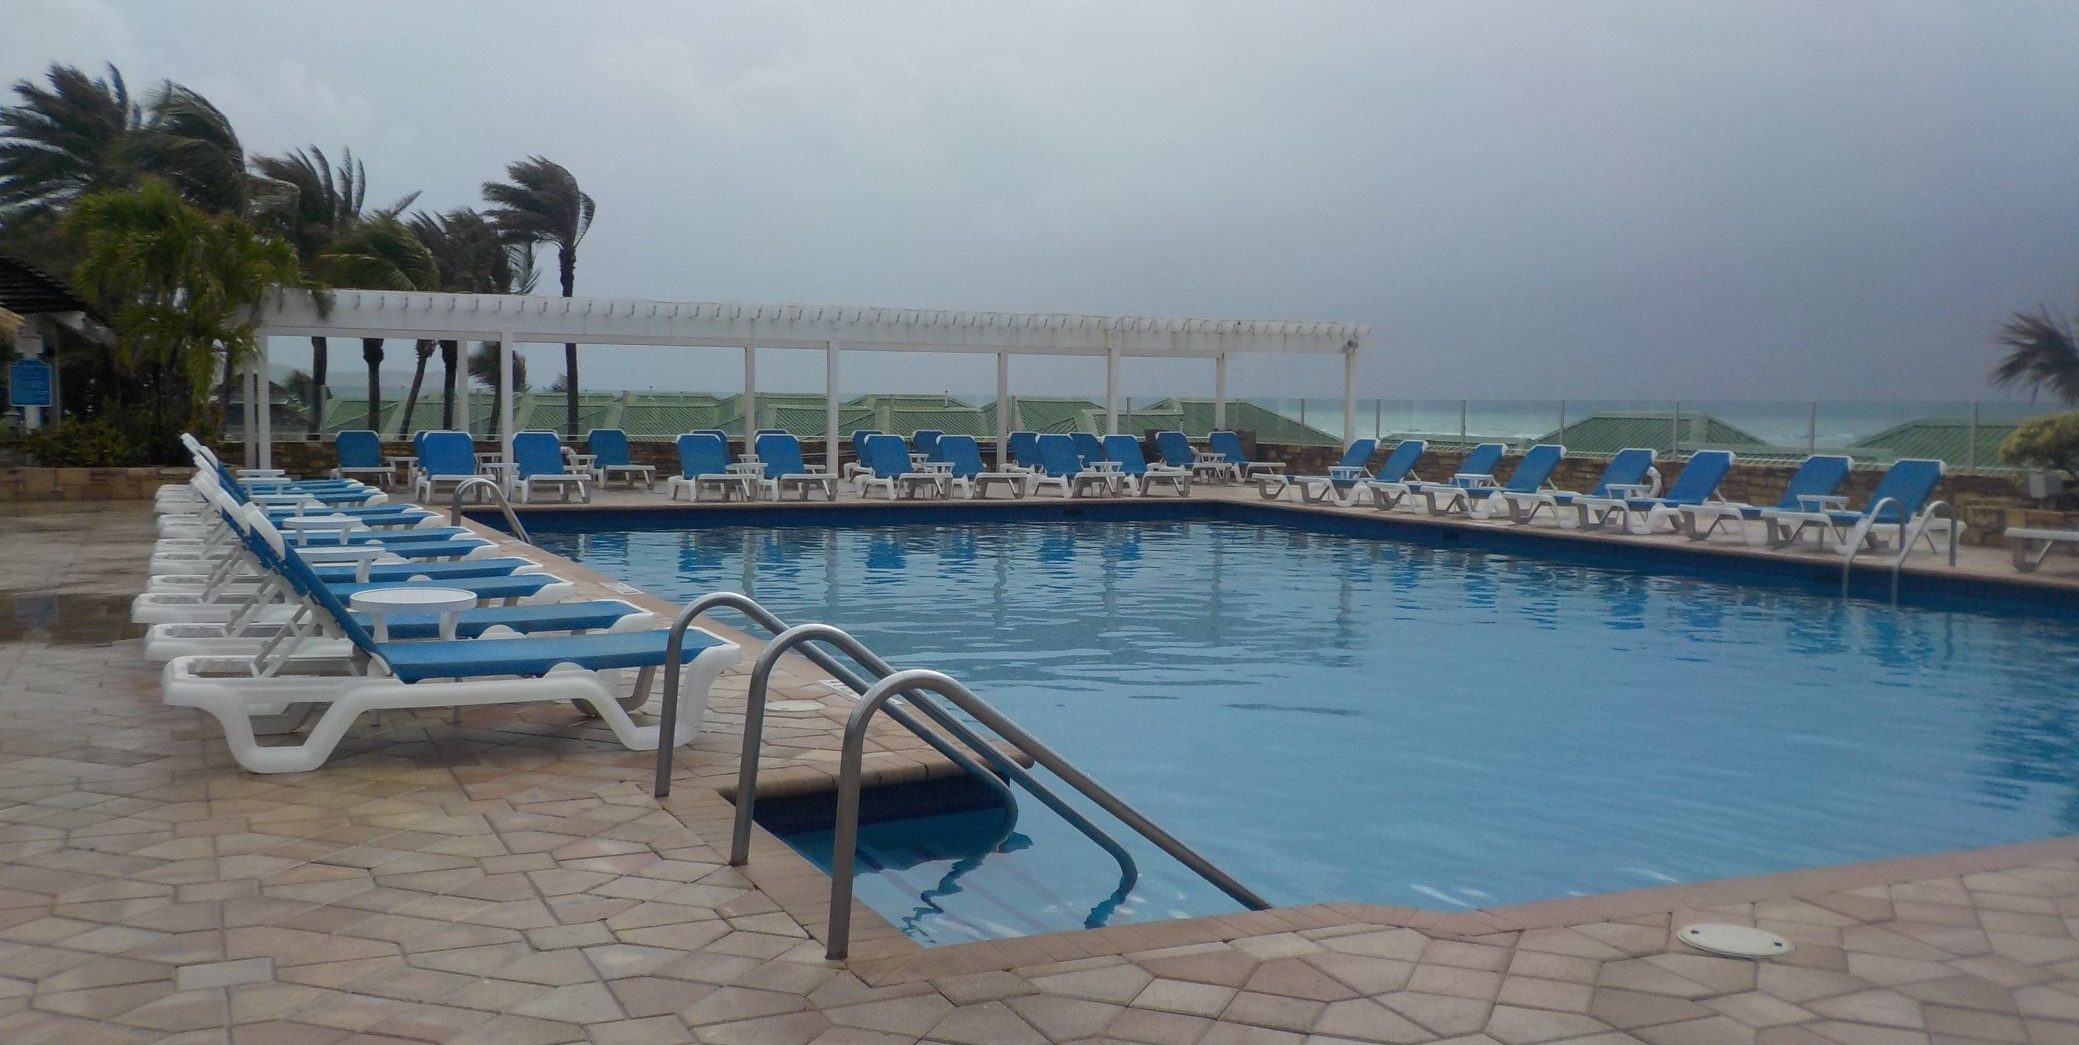 Main swimming pool at St James Club Antigua